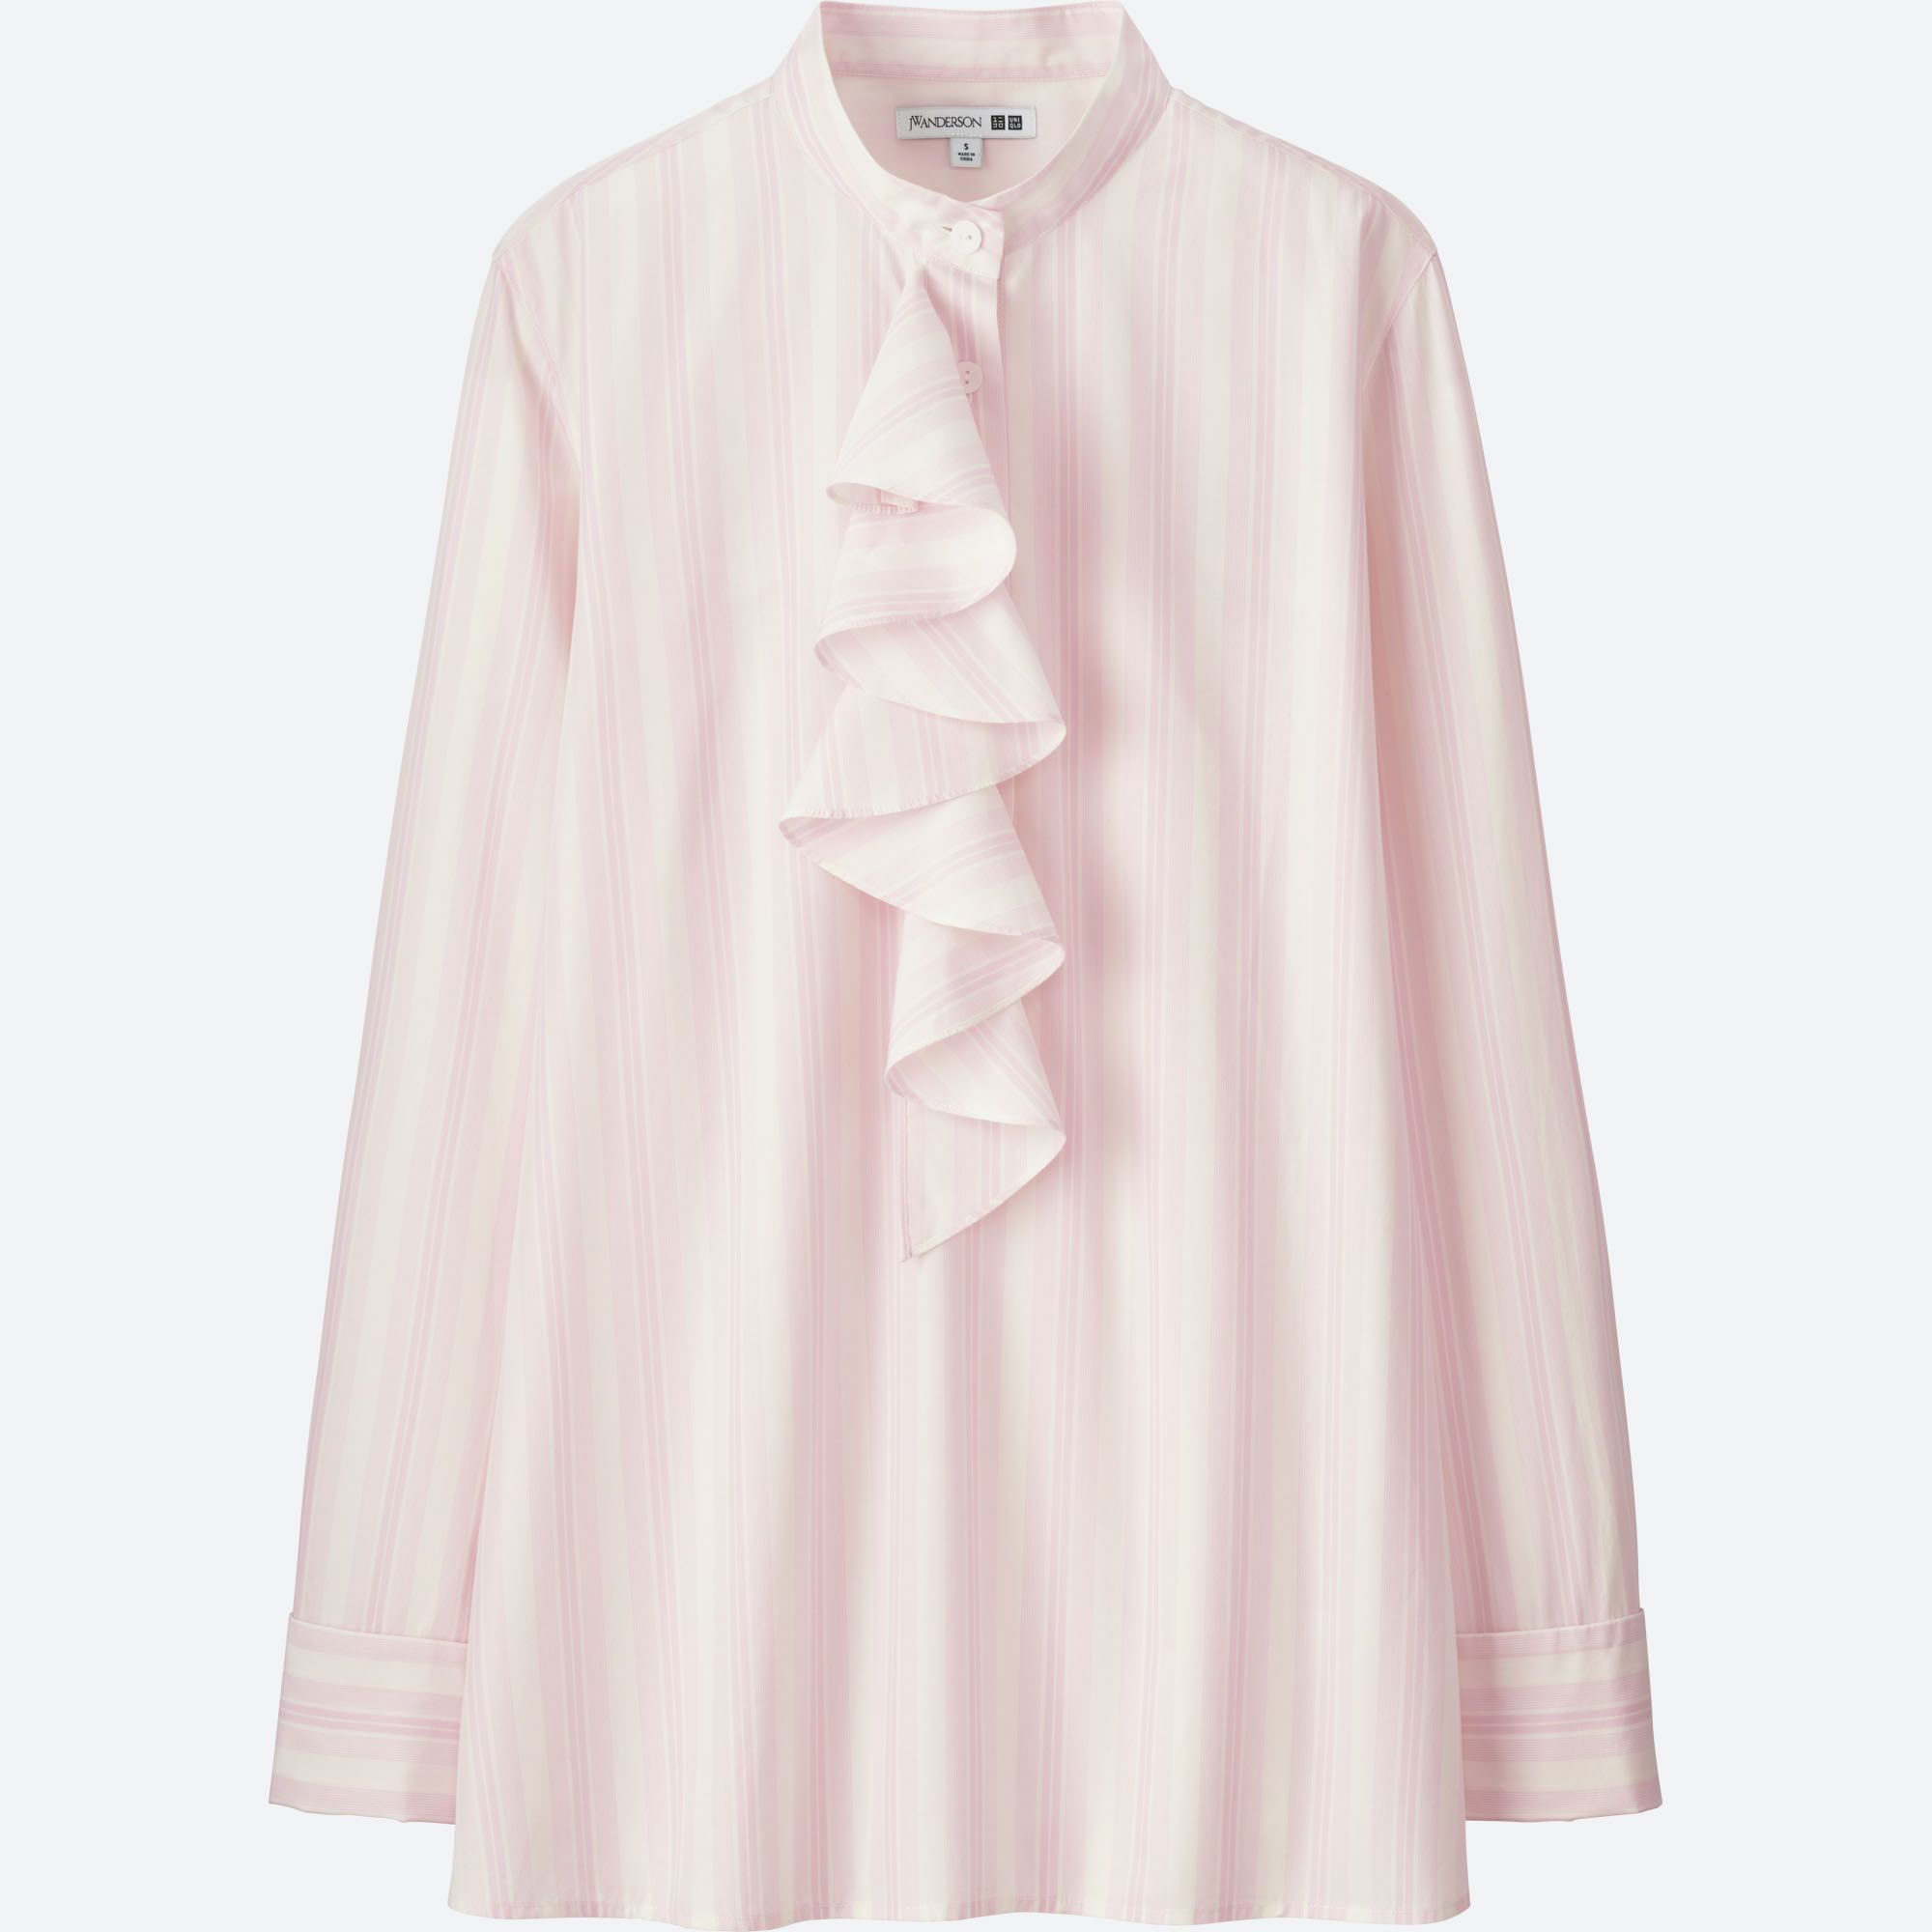 J.W.Anderson Collection For Uniqlo   ELLE UK